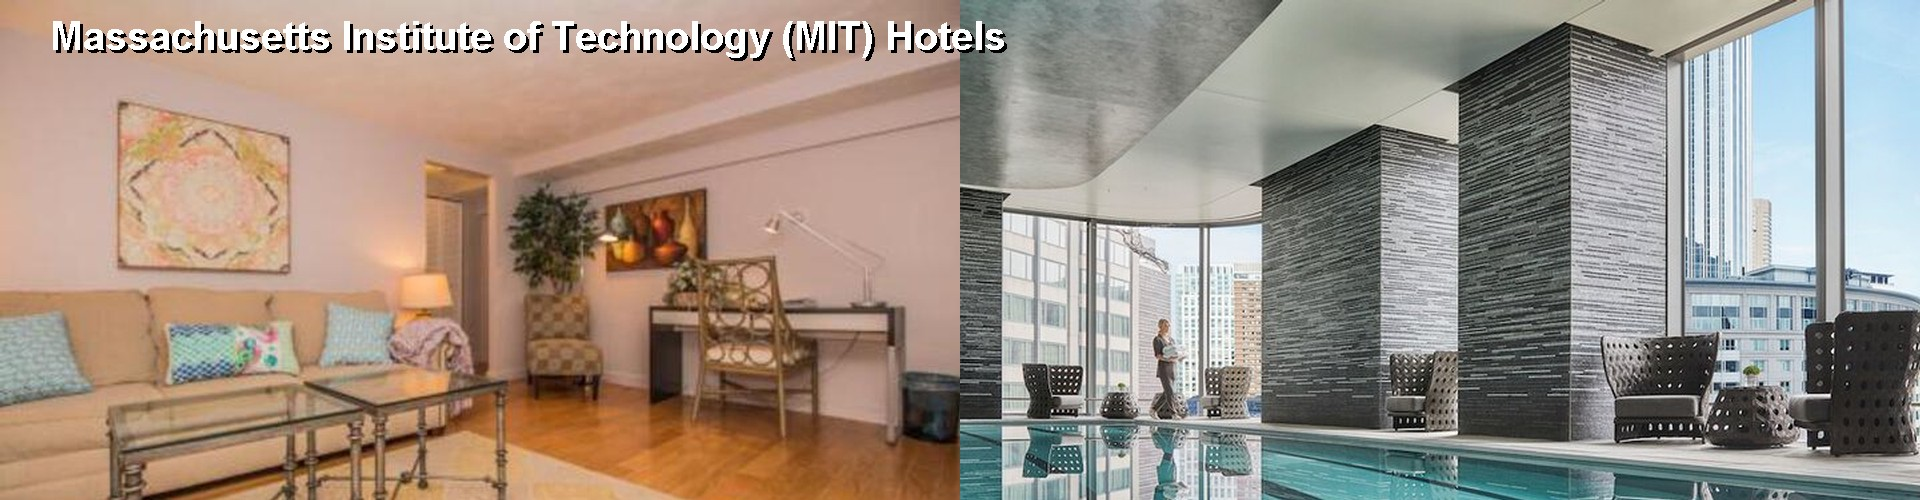 5 Best Hotels near Massachusetts Institute of Technology (MIT)